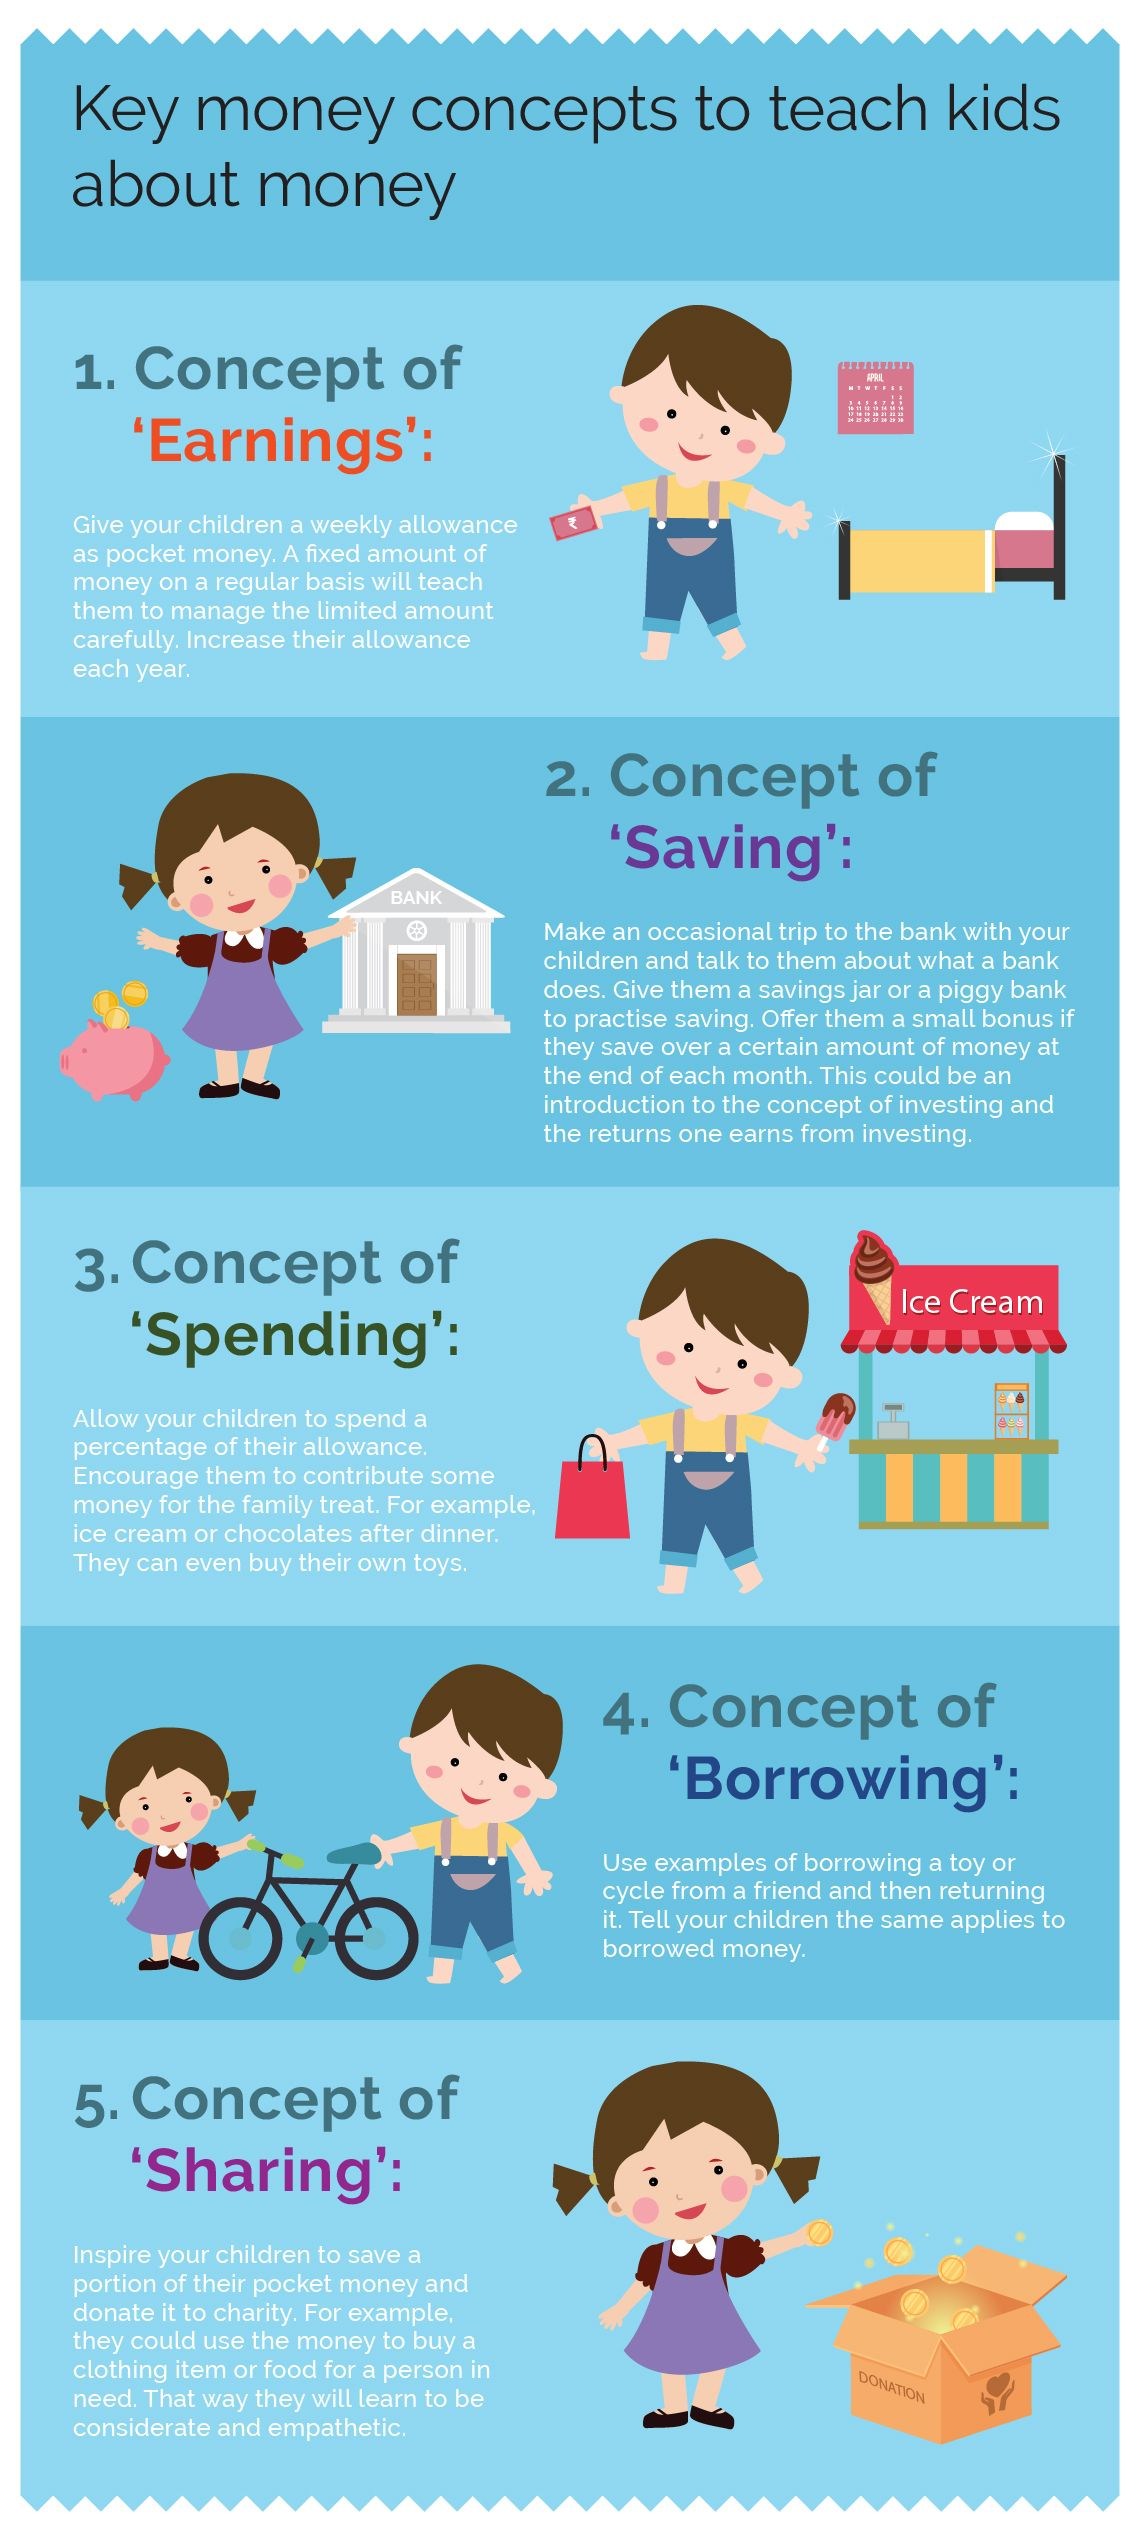 Key Money Concepts To Teach Kids About Money With Images